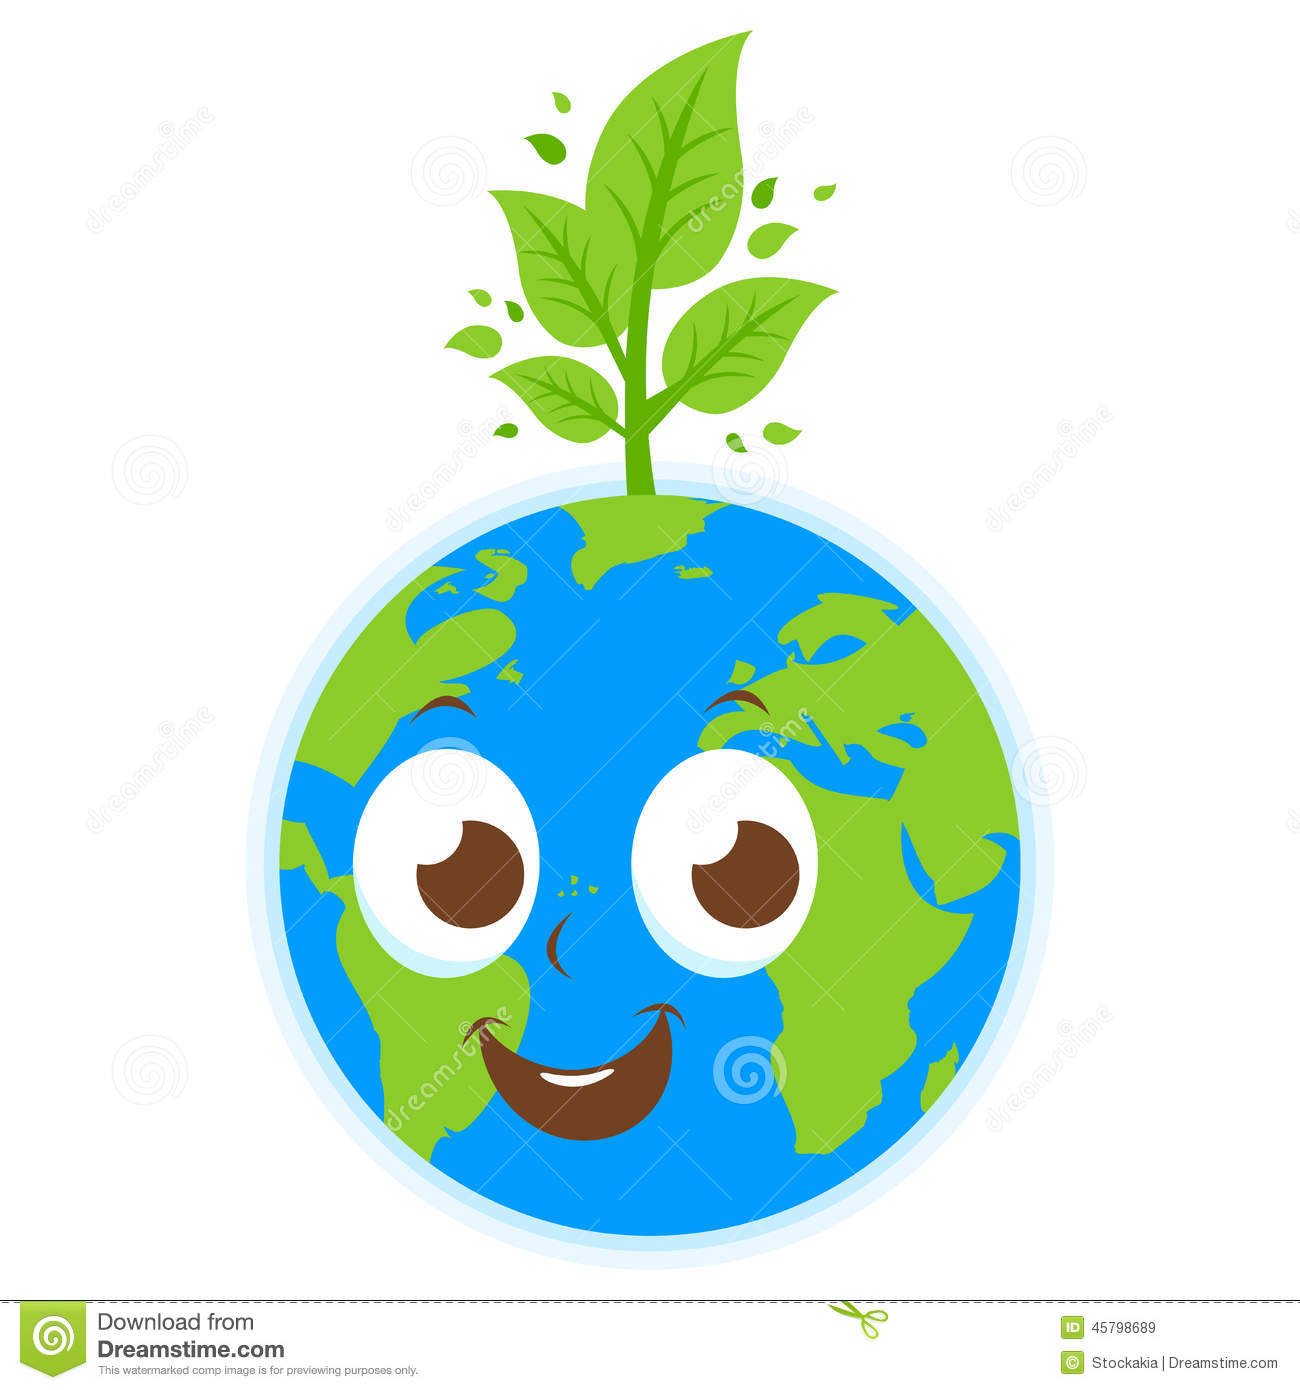 Planet Earth And Tree Cartoon Stock Vector - Image: 45798689